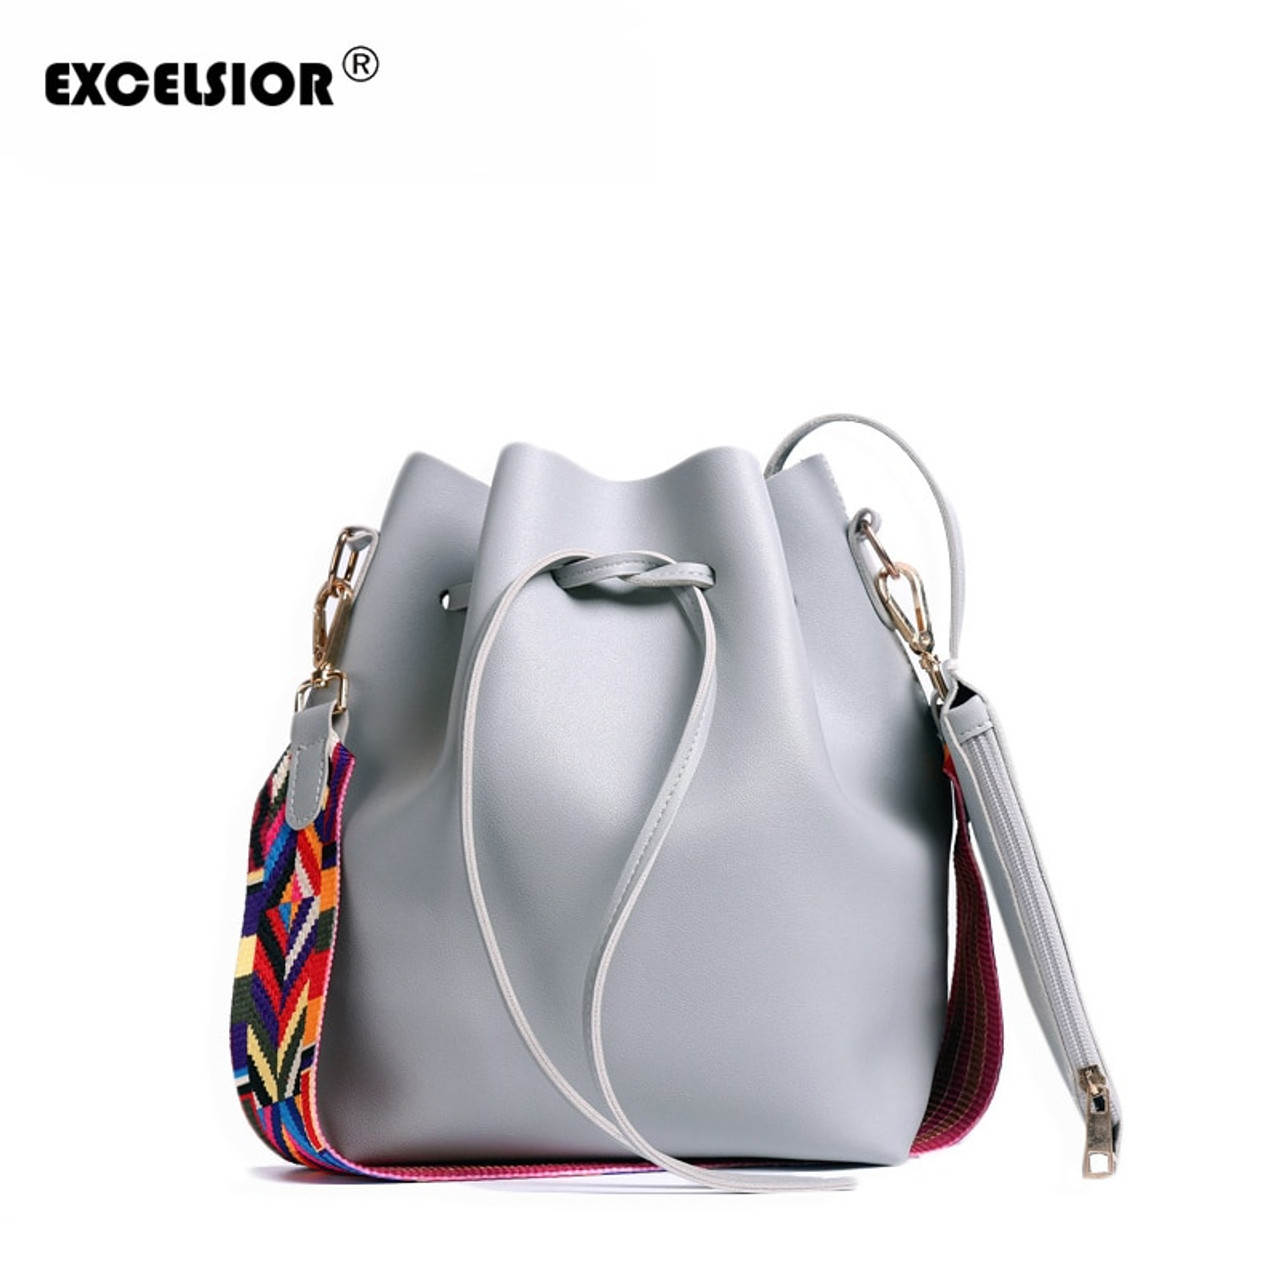 d887ef2d5b EXCELSIOR Hot Sale High Qulity PU Leather Women s Handbag New Fashionable  Bucket Bag Messenger Bags with ...